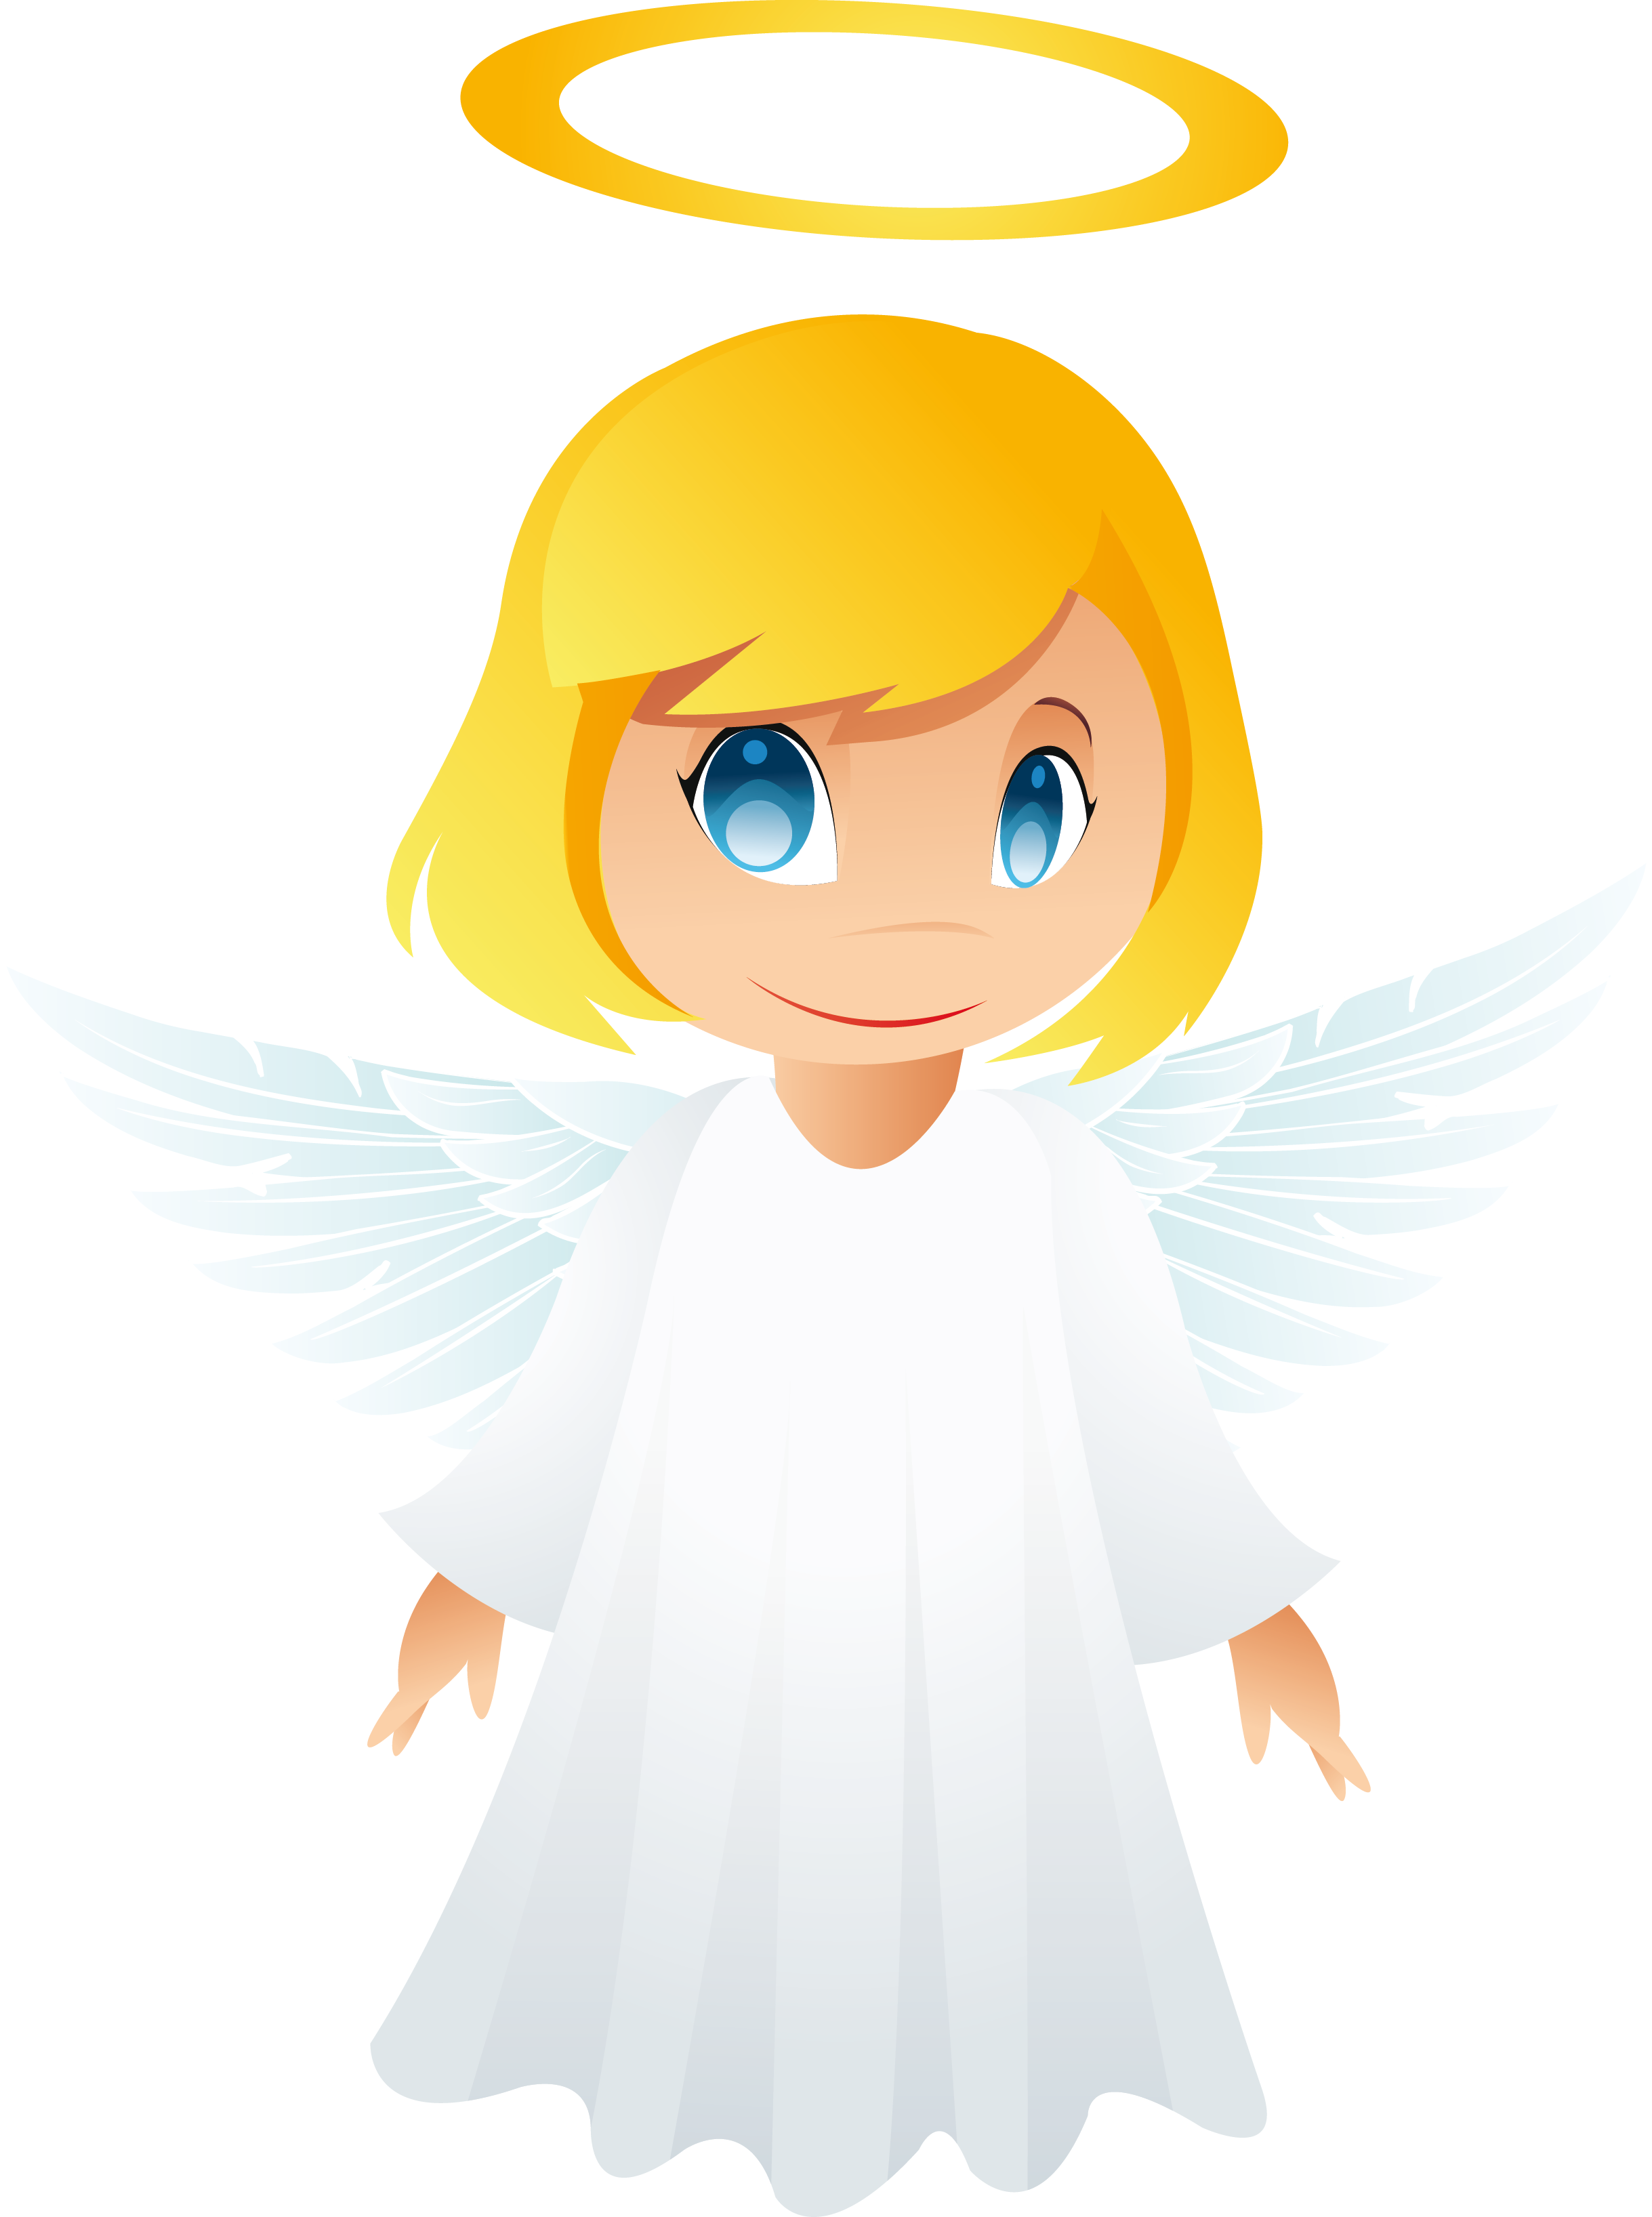 Angels transparent background